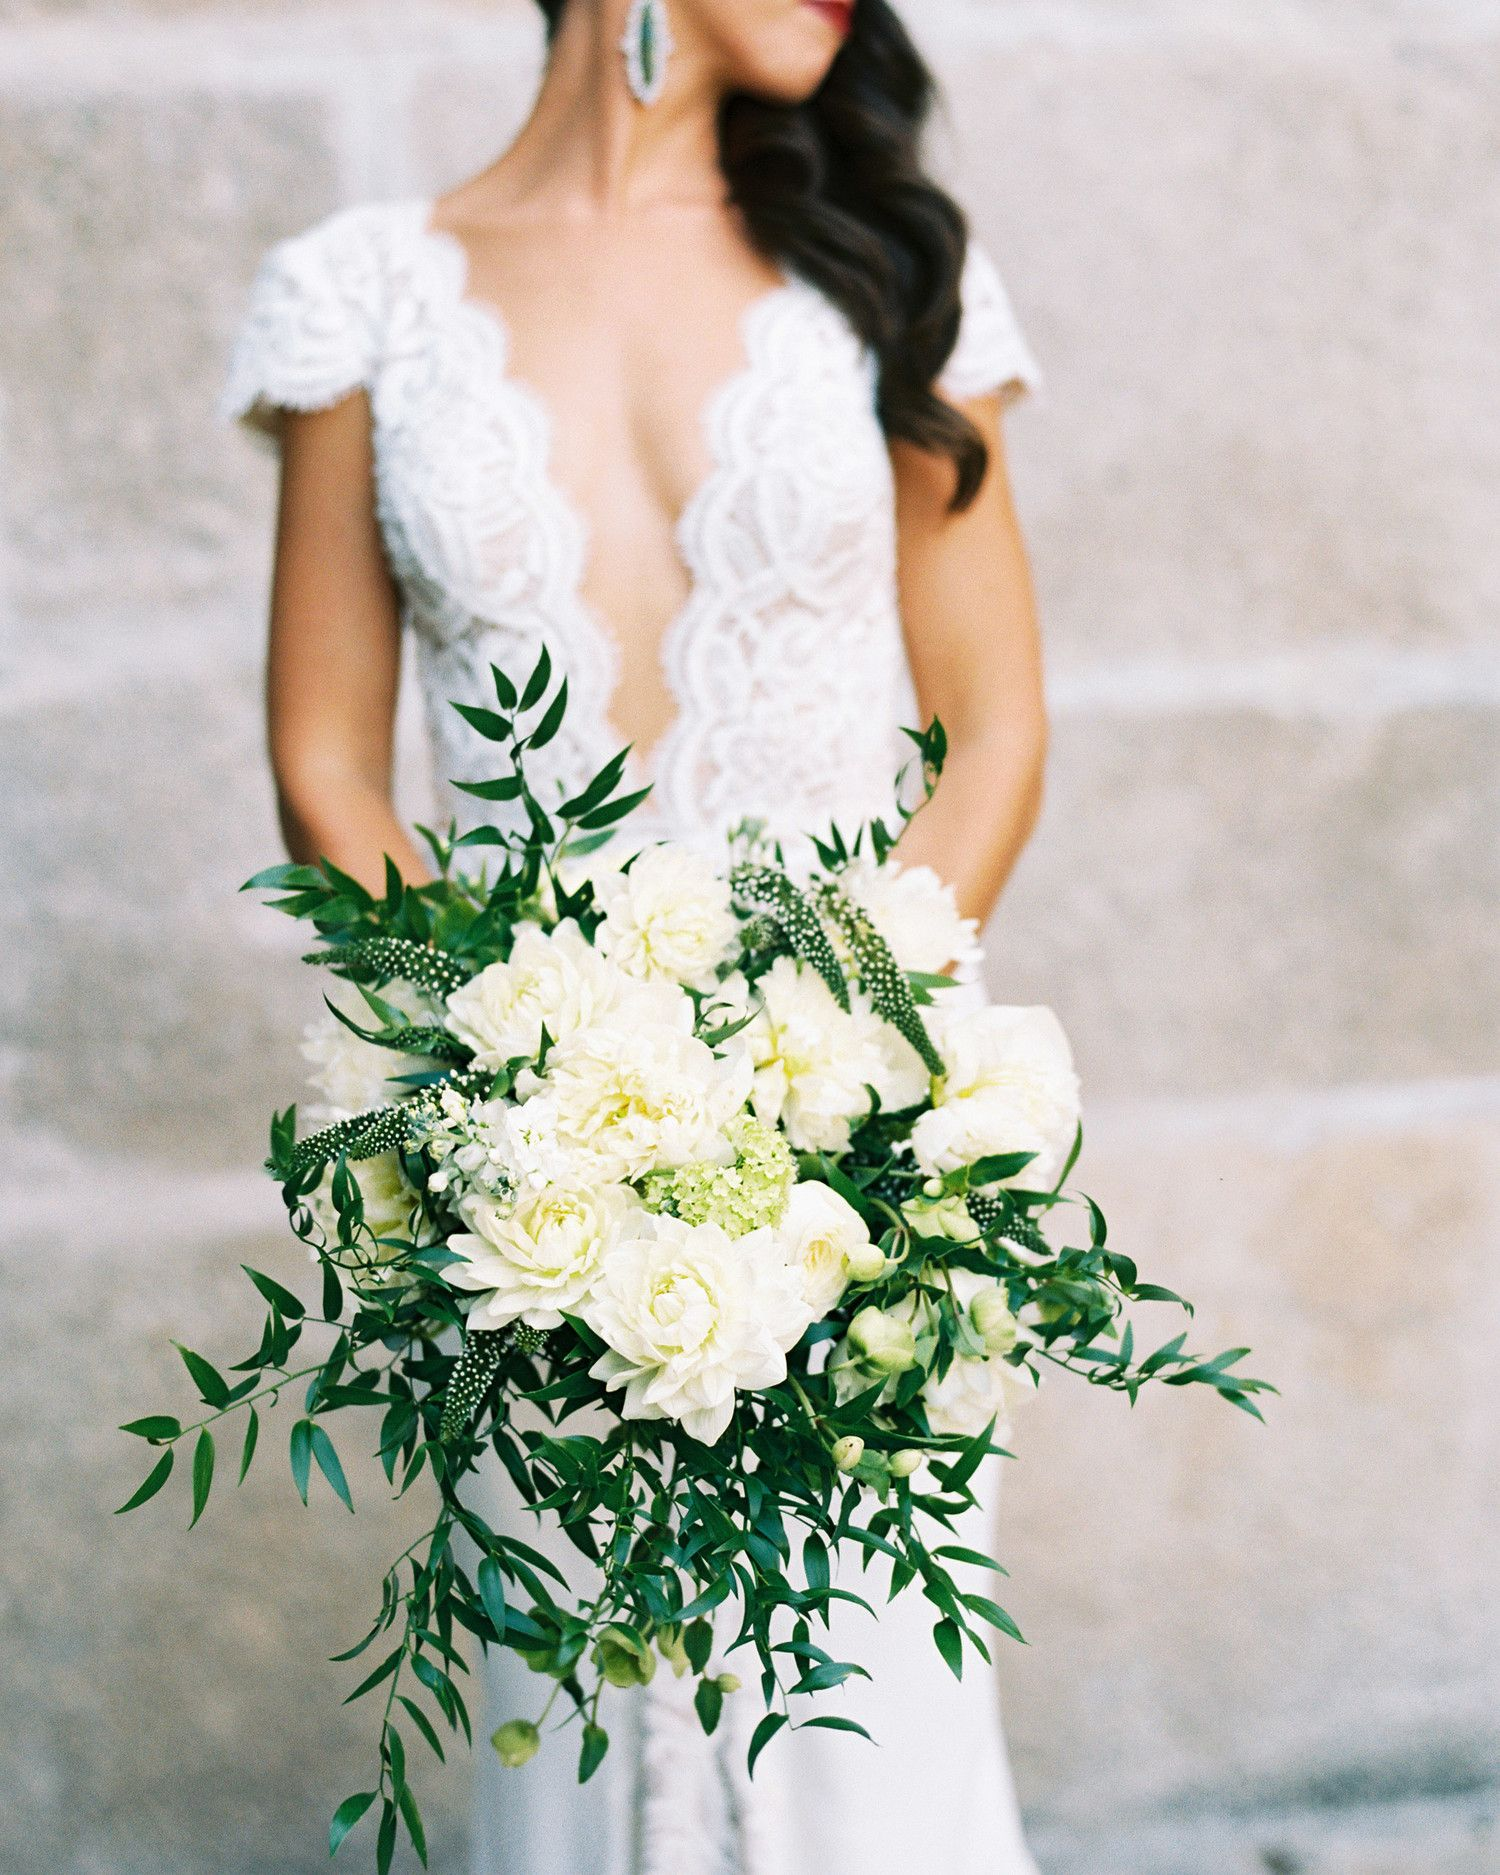 Gorgeous White Wedding Inspiration Bridalguide: A Three-Day Destination Wedding In Portugal